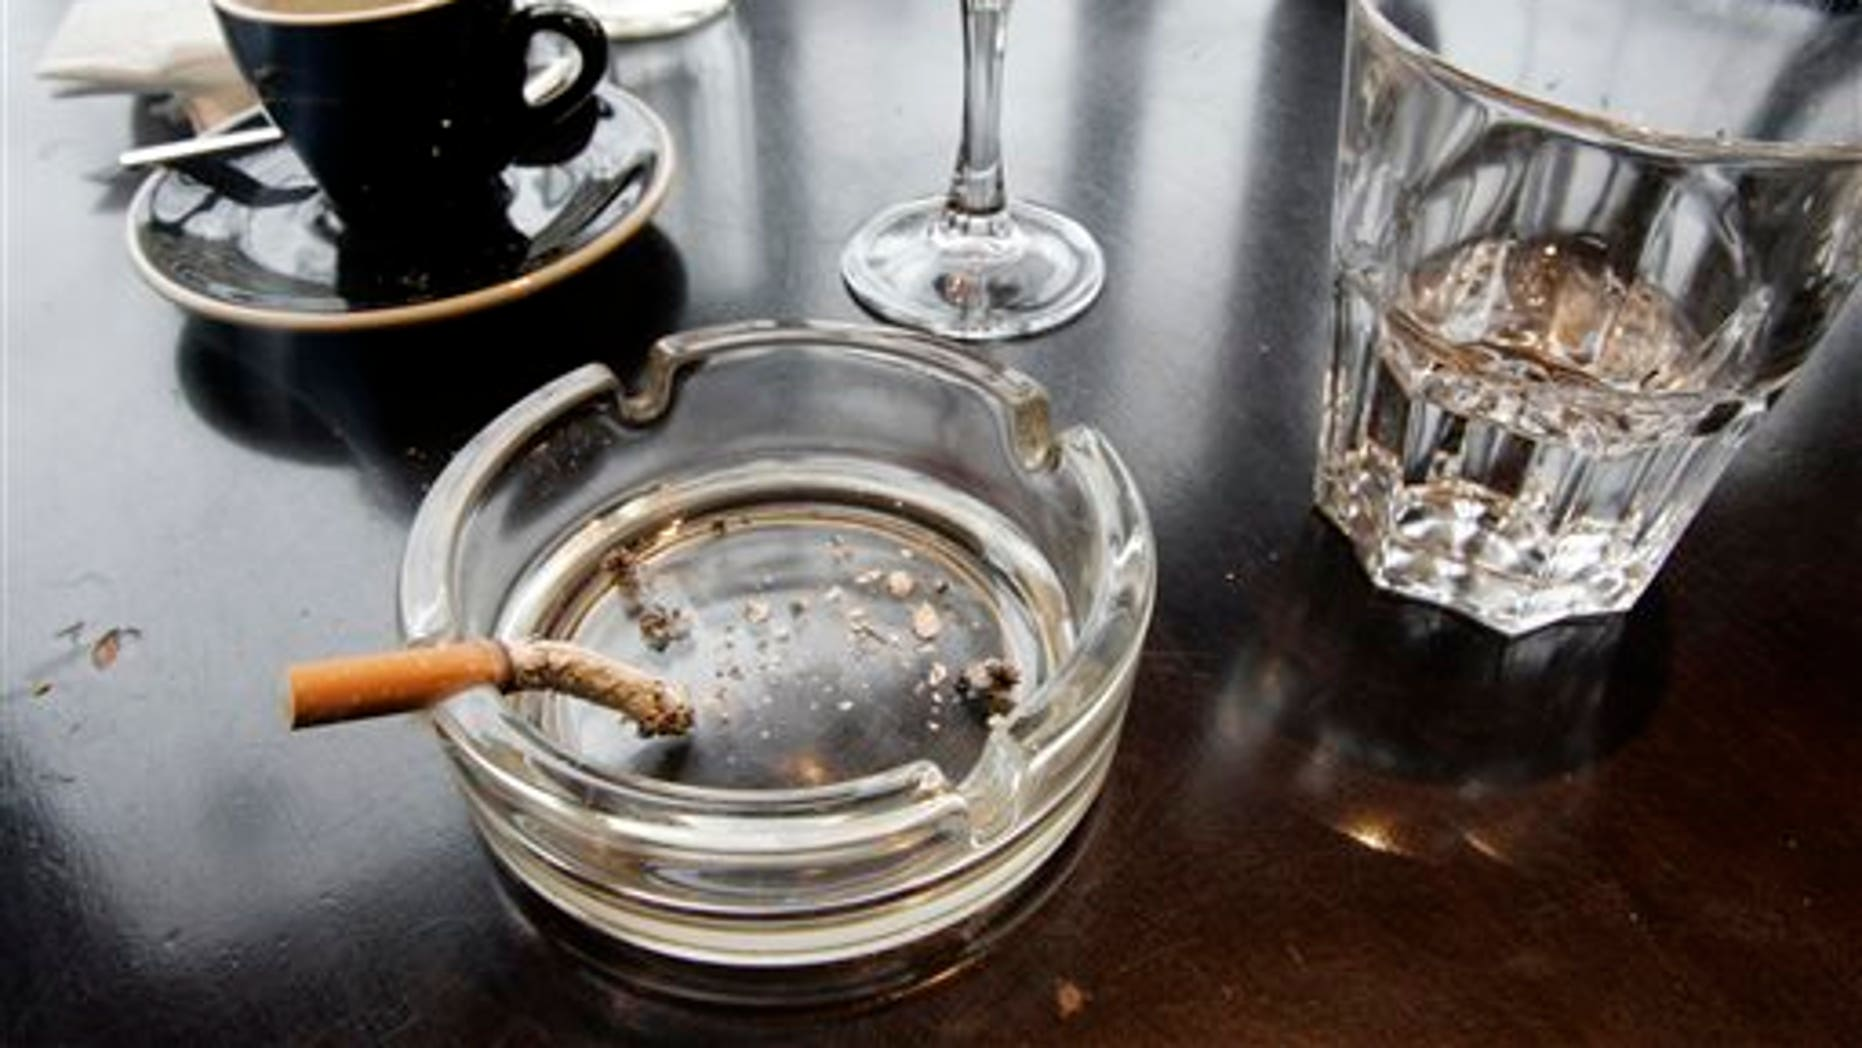 FILE - In this Thursday, Dec. 27, 2007 file photo, a cigarette burns out in an ashtray after lunch at a restaurant in Paris. According to a report released on Wednesday, Feb. 4, 2015, for the first time, lung cancer has passed breast cancer as the leading cause of cancer deaths for women in rich countries, according to the American Cancer Society based on new numbers from the International Agency for Research on Cancer. (AP Photo/Francois Mori)